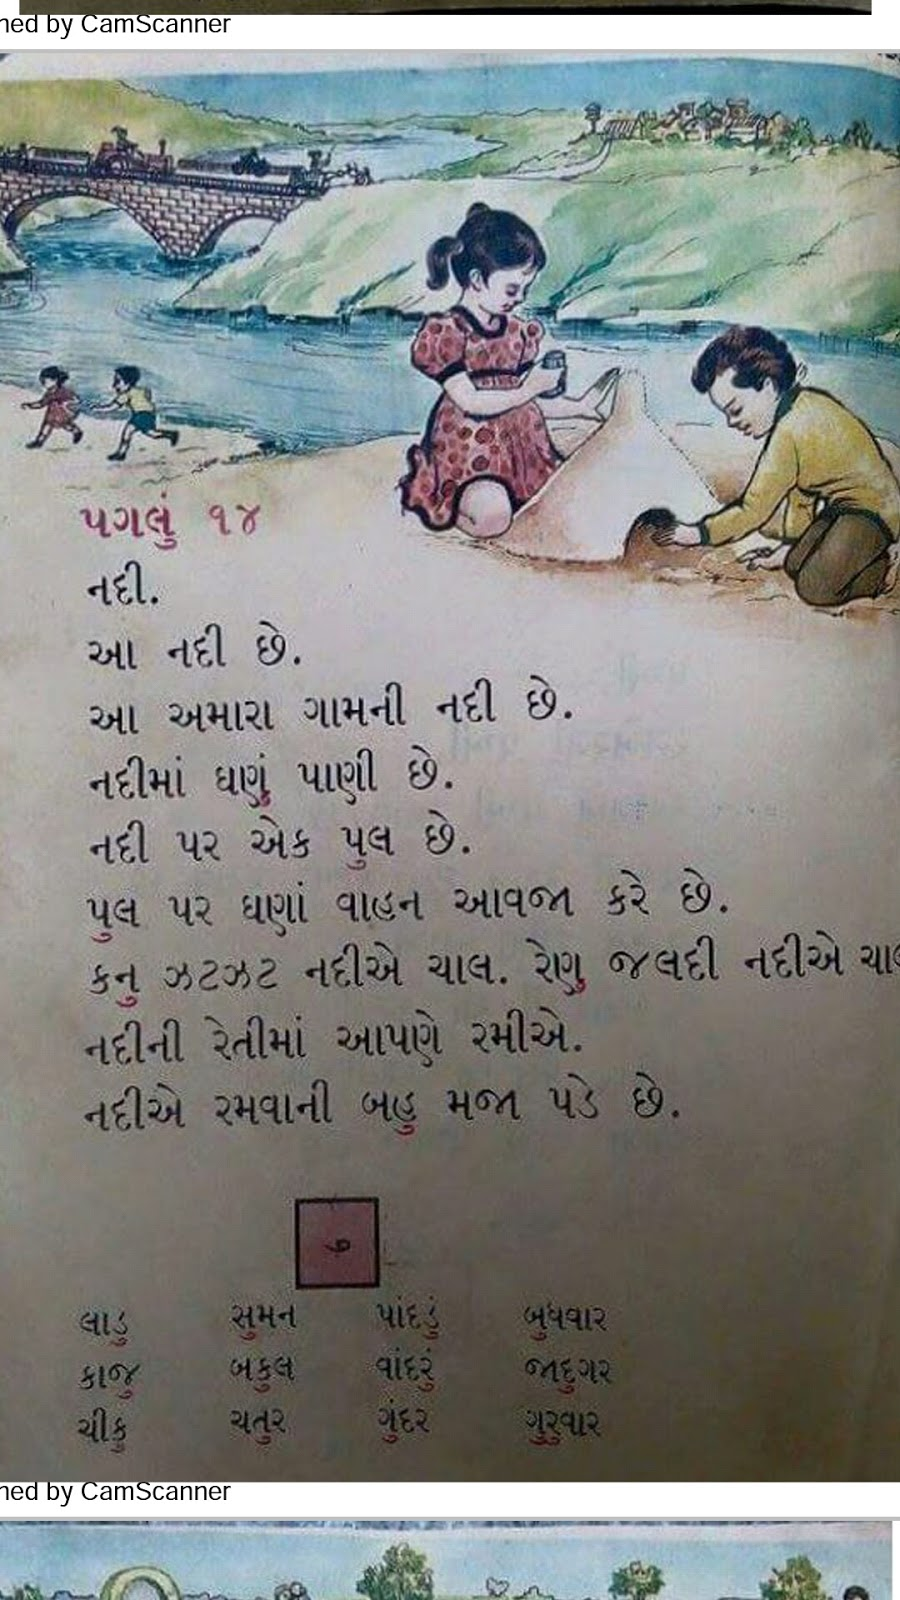 Gujarat Education: PAGLA :- AAPNA BHANTAR ANE SHIKSHAN NI SHARUAAT